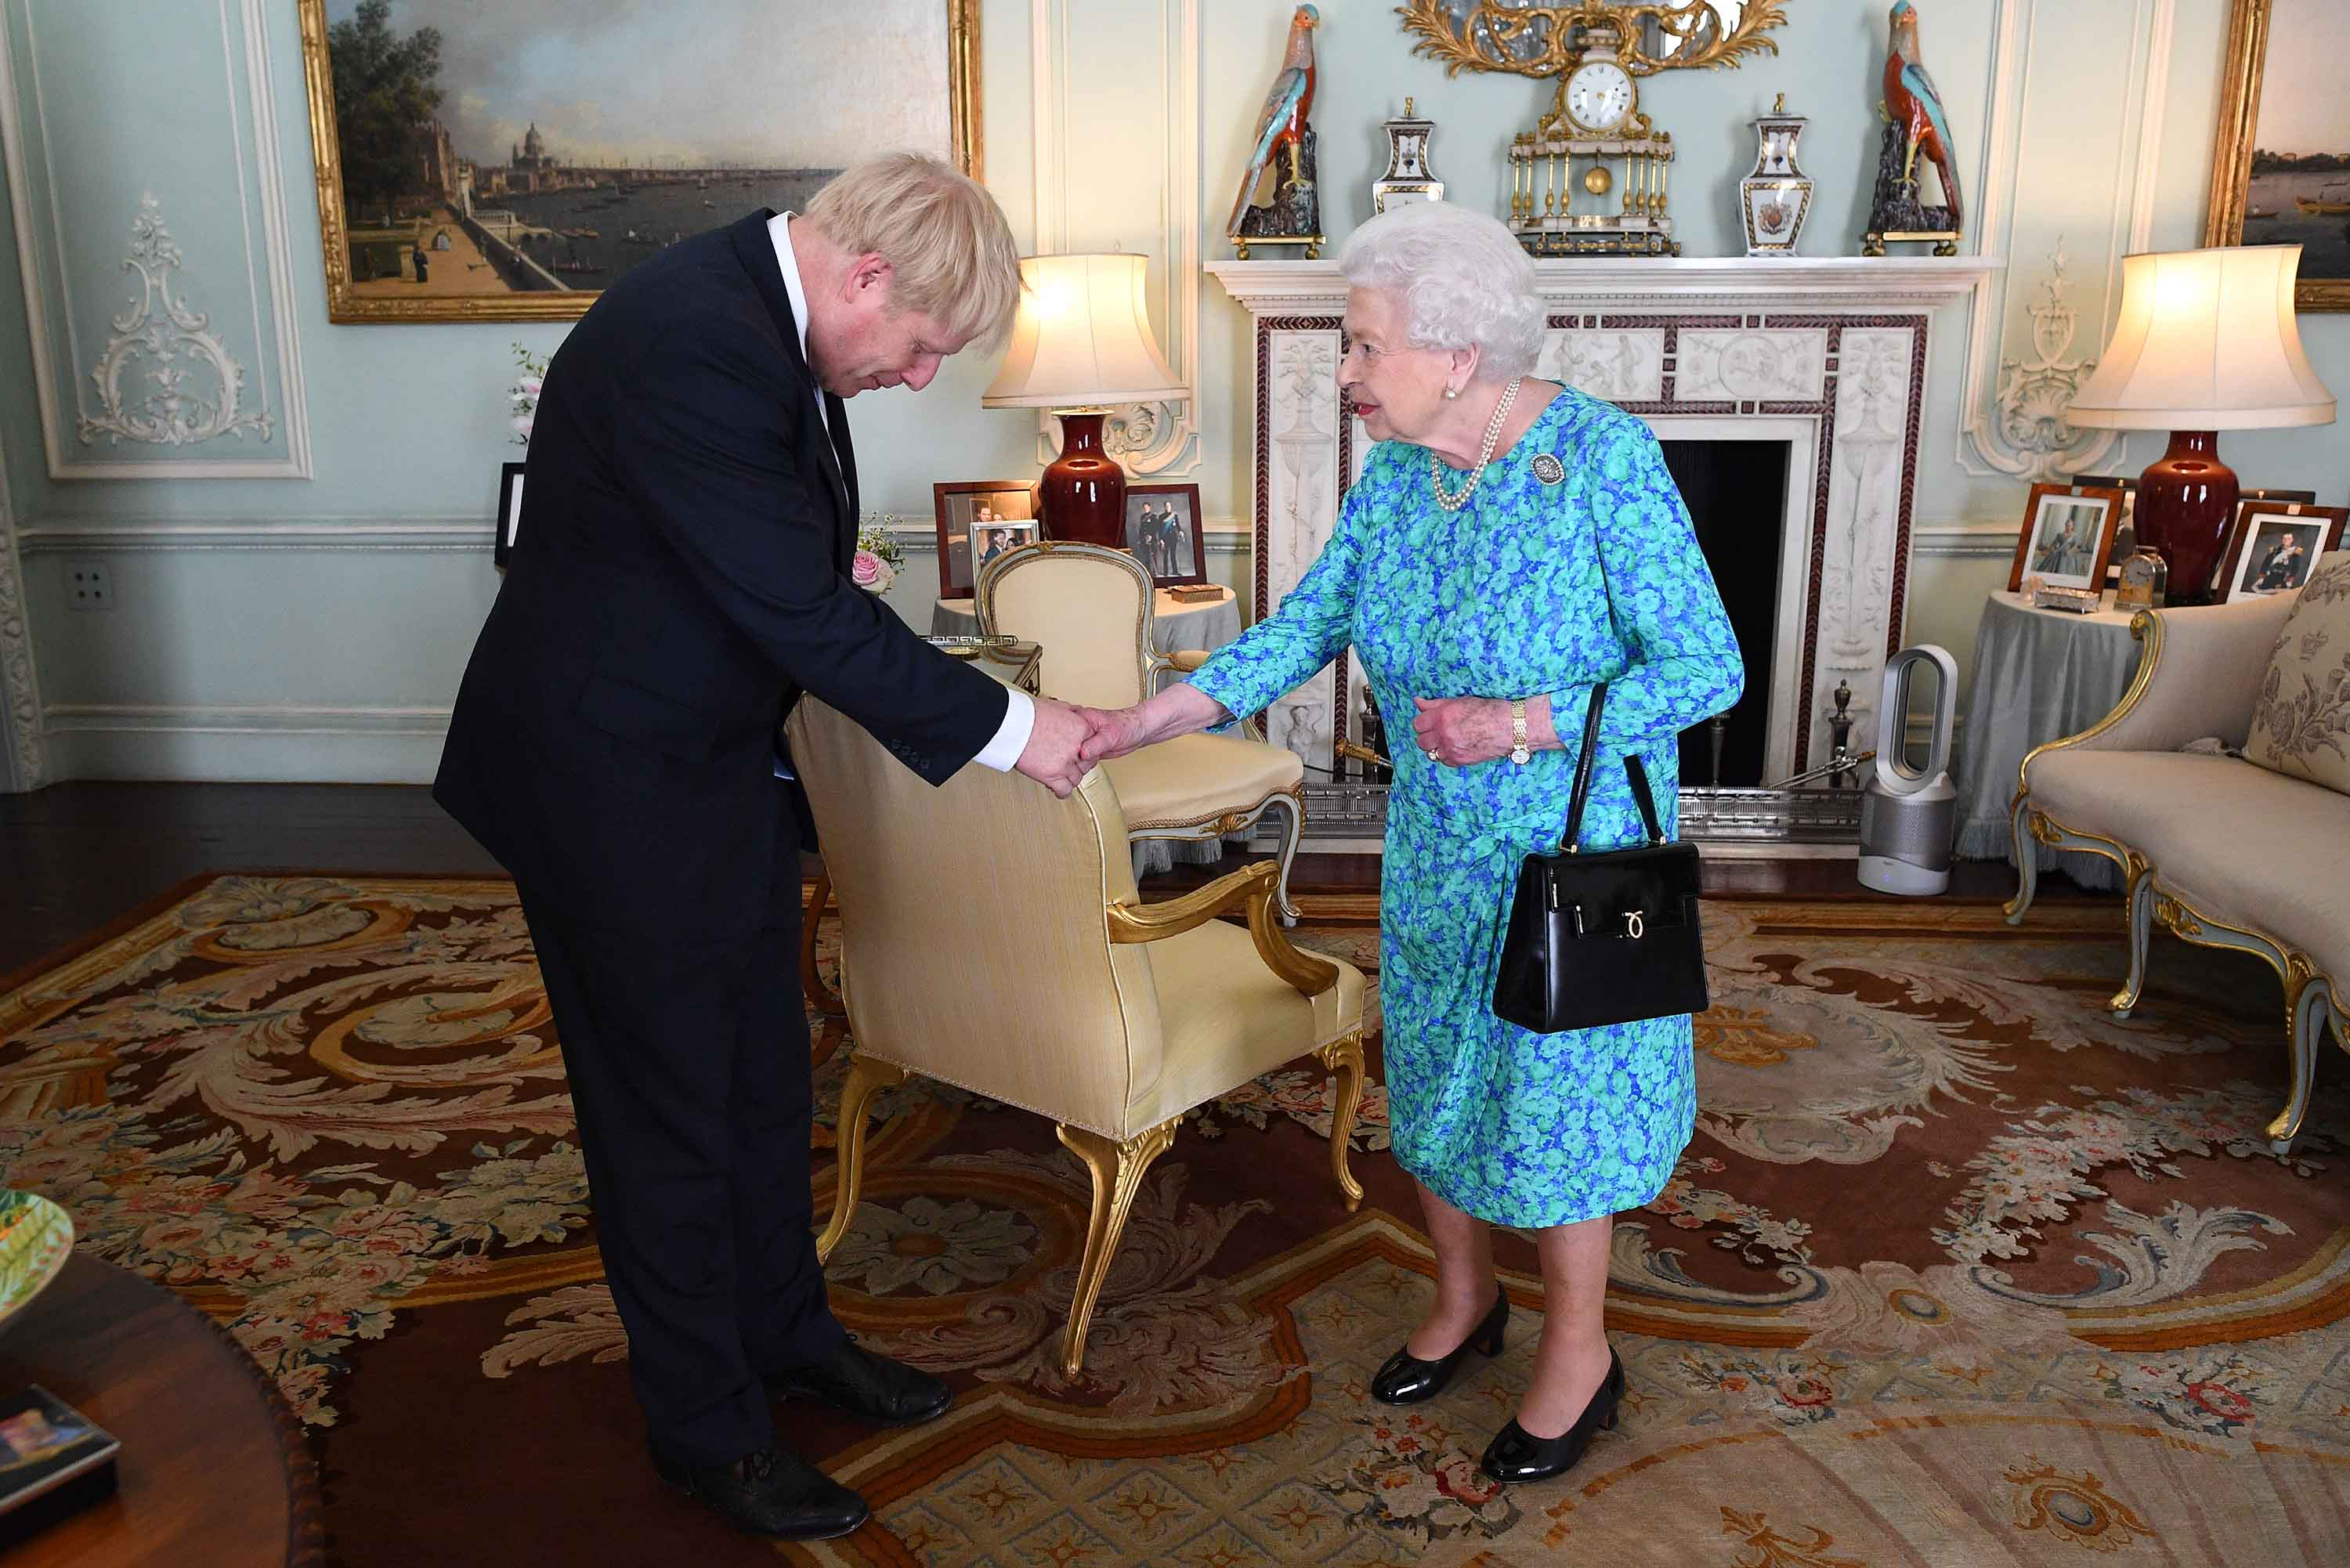 The Queen greets Boris Johnson at Buckingham Palace in July.